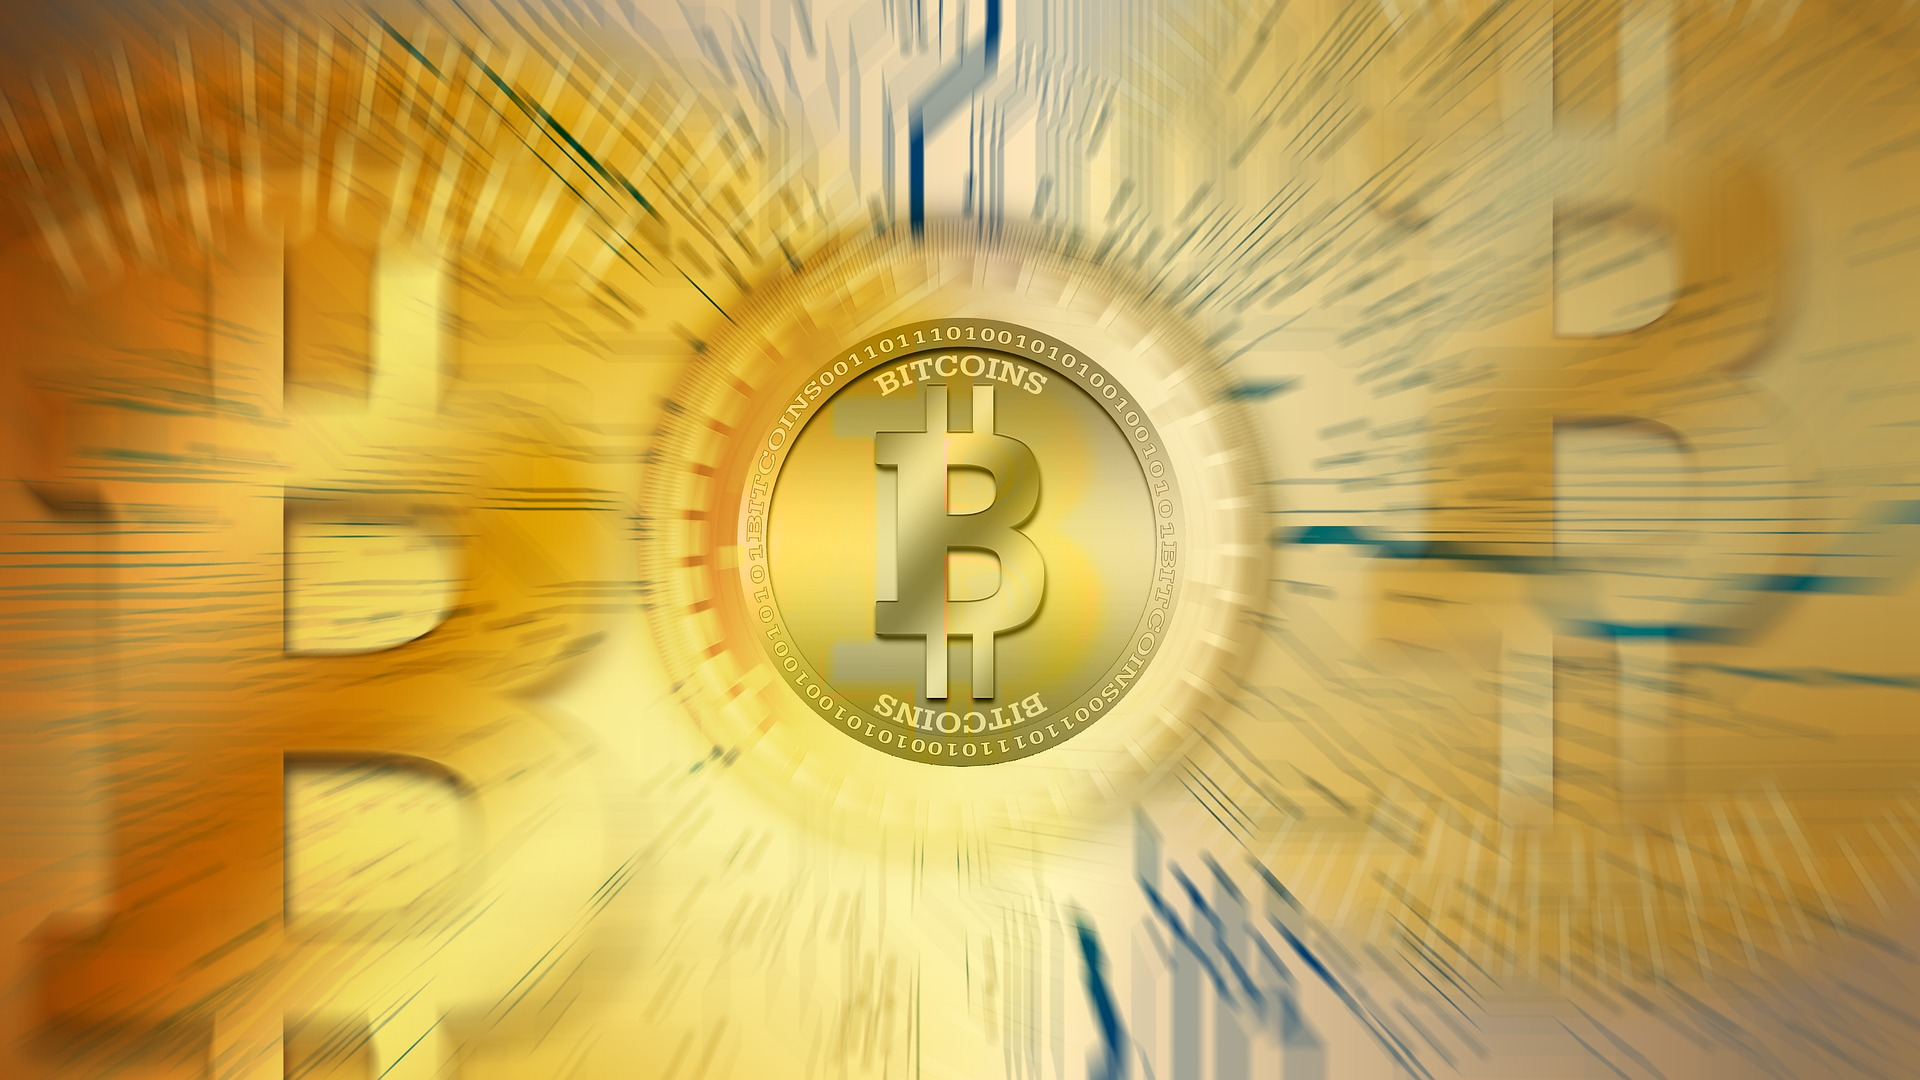 Bitcoin's Earlier Blueprints Founds in Cypherpunk Emails